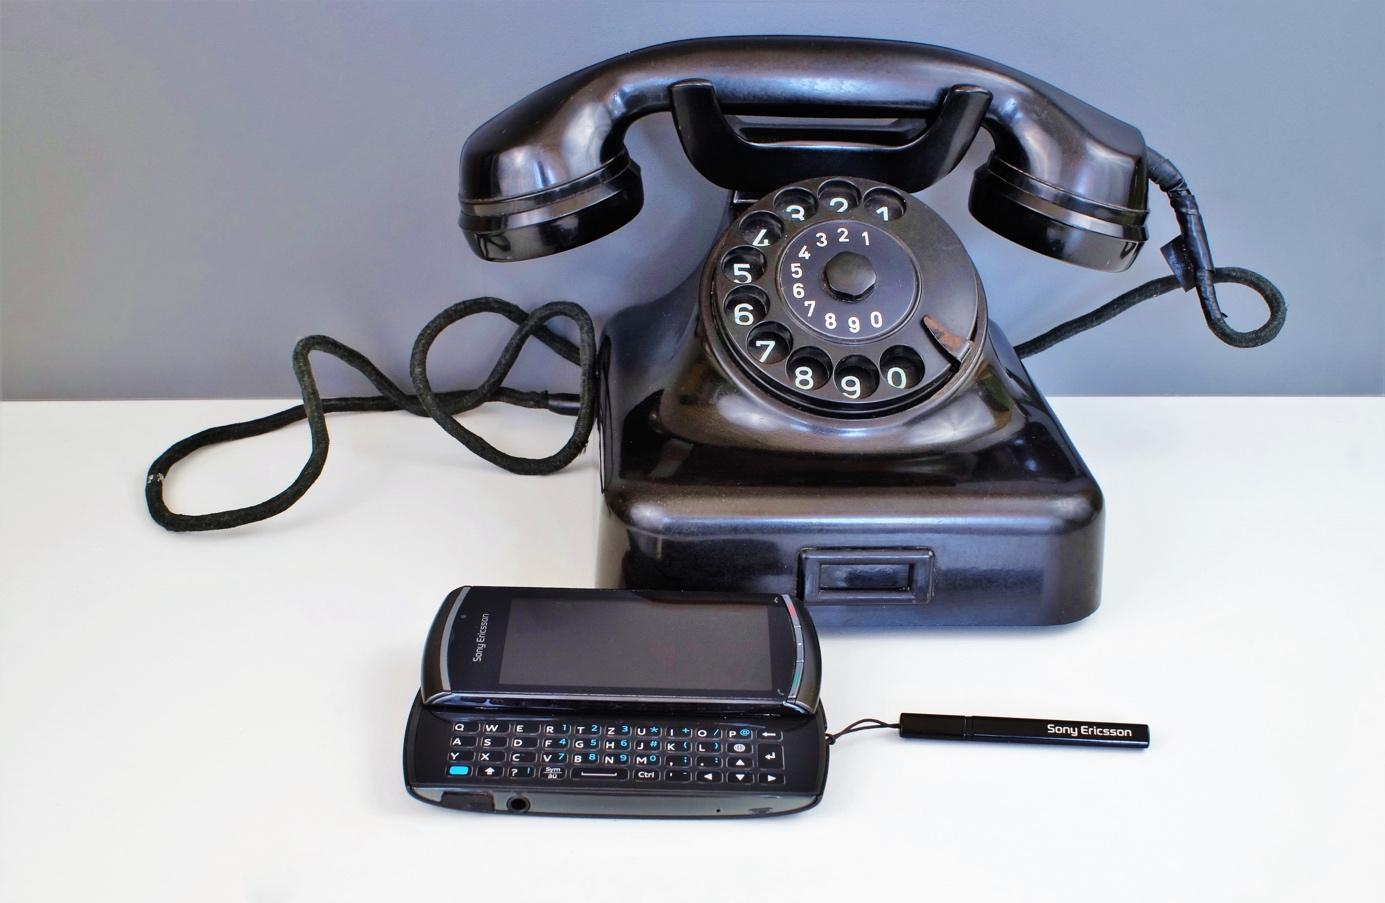 keyboard-technology-old-phone-office-telephone-1383219-pxhere.com.jpg